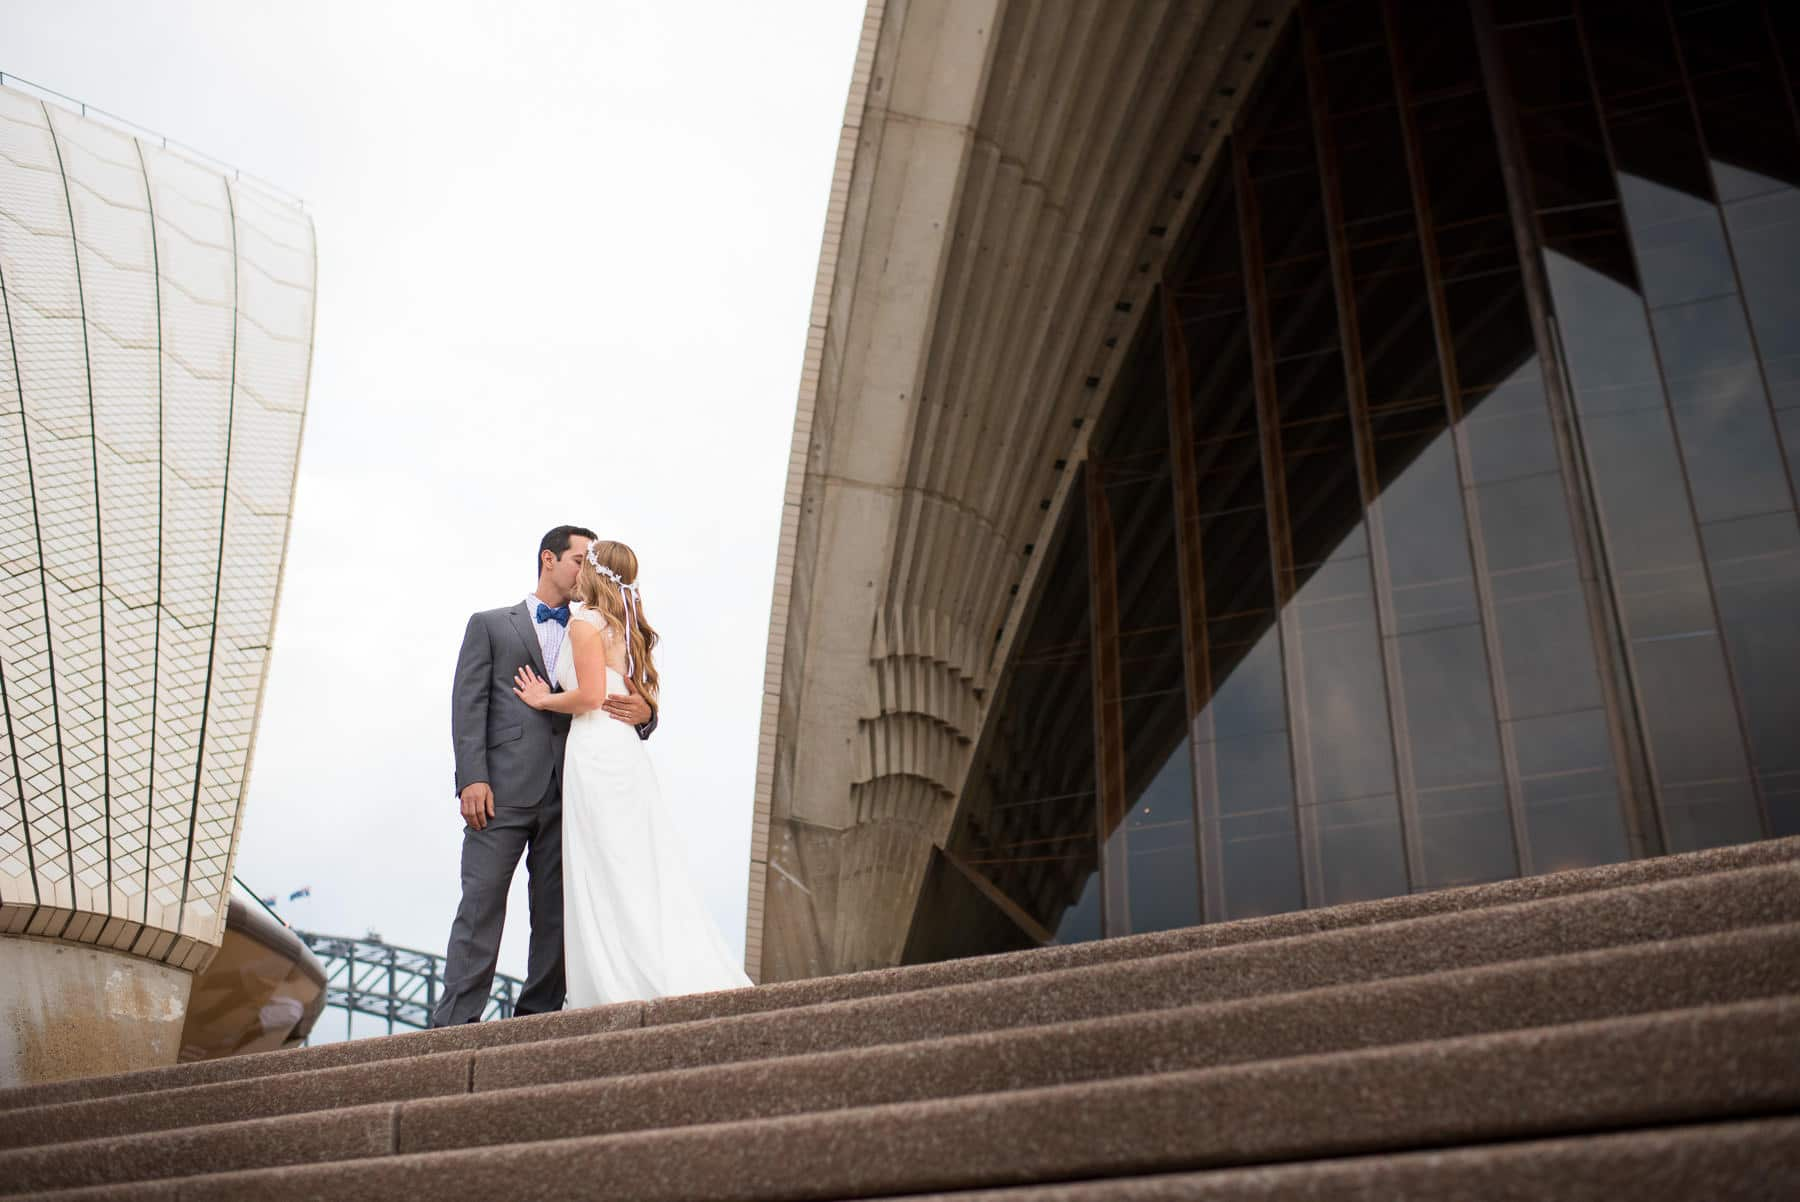 Wedding Photography Location - Sydney Opera House Wedding